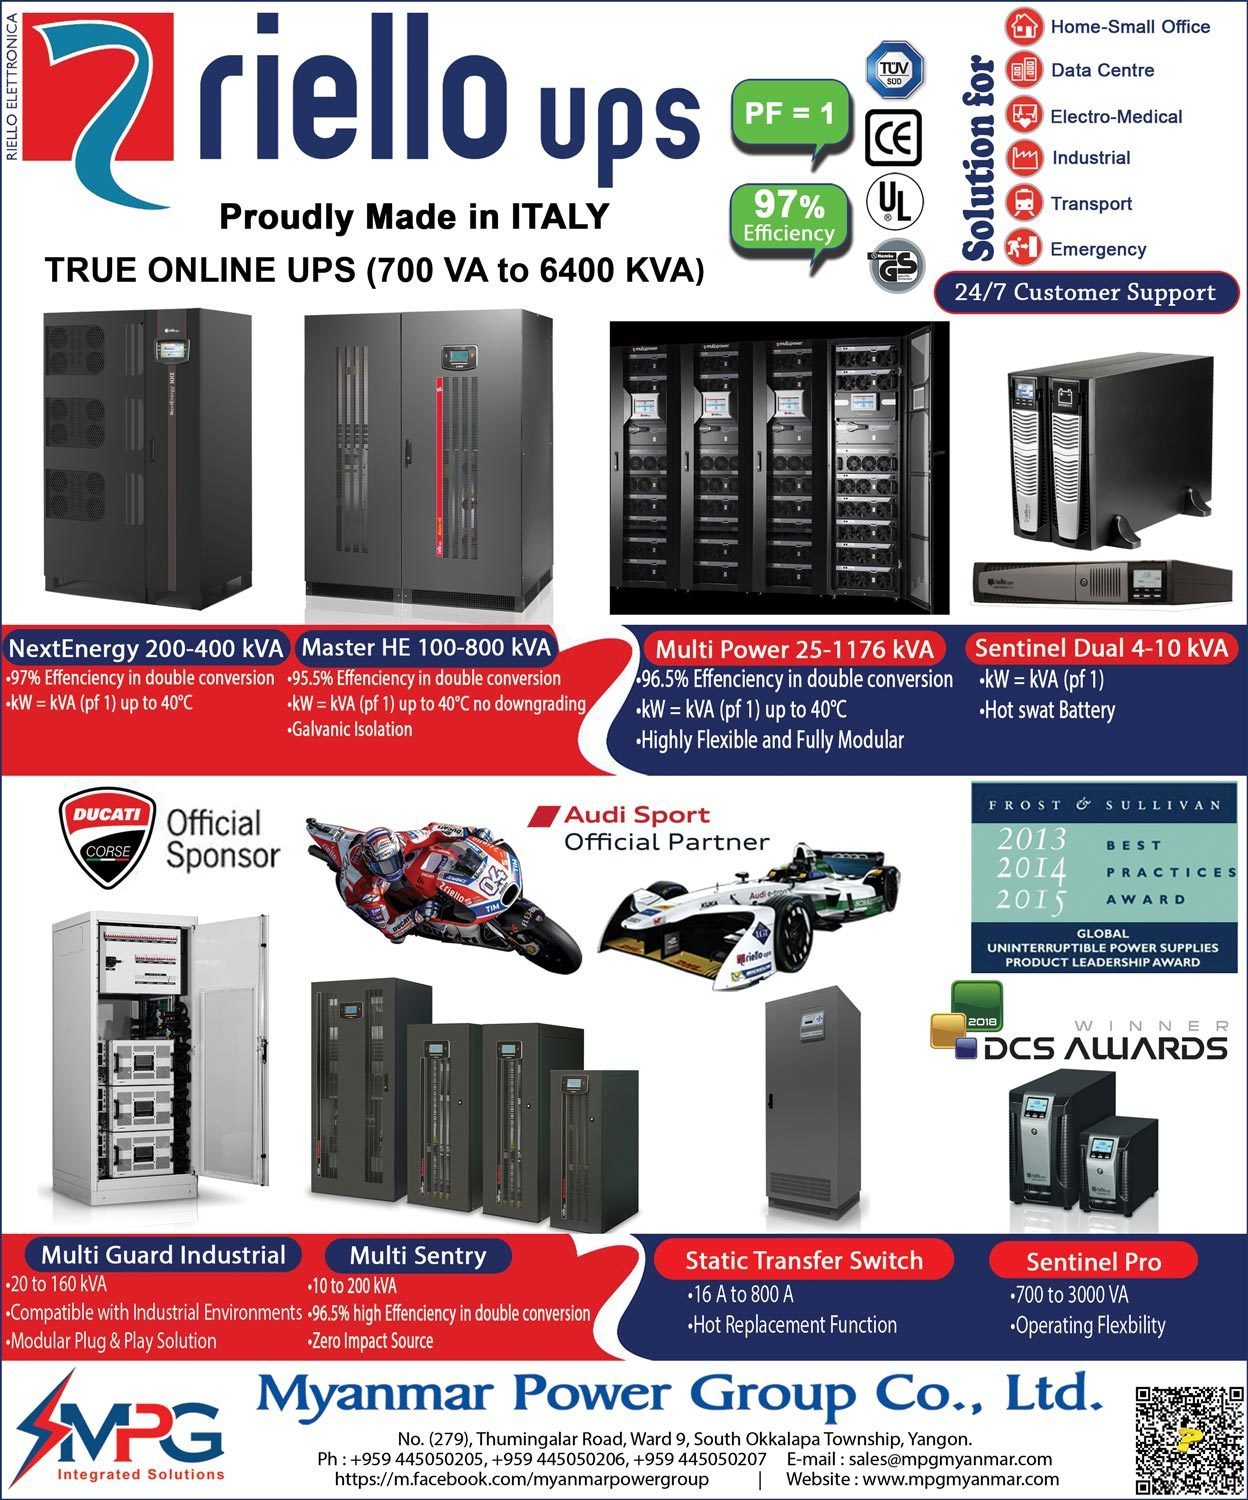 Myanmar-Power-Group-Co-Ltd-(MPG)_Uninterruptible-Power-Supply-(UPS)_(A)_3895.jpg